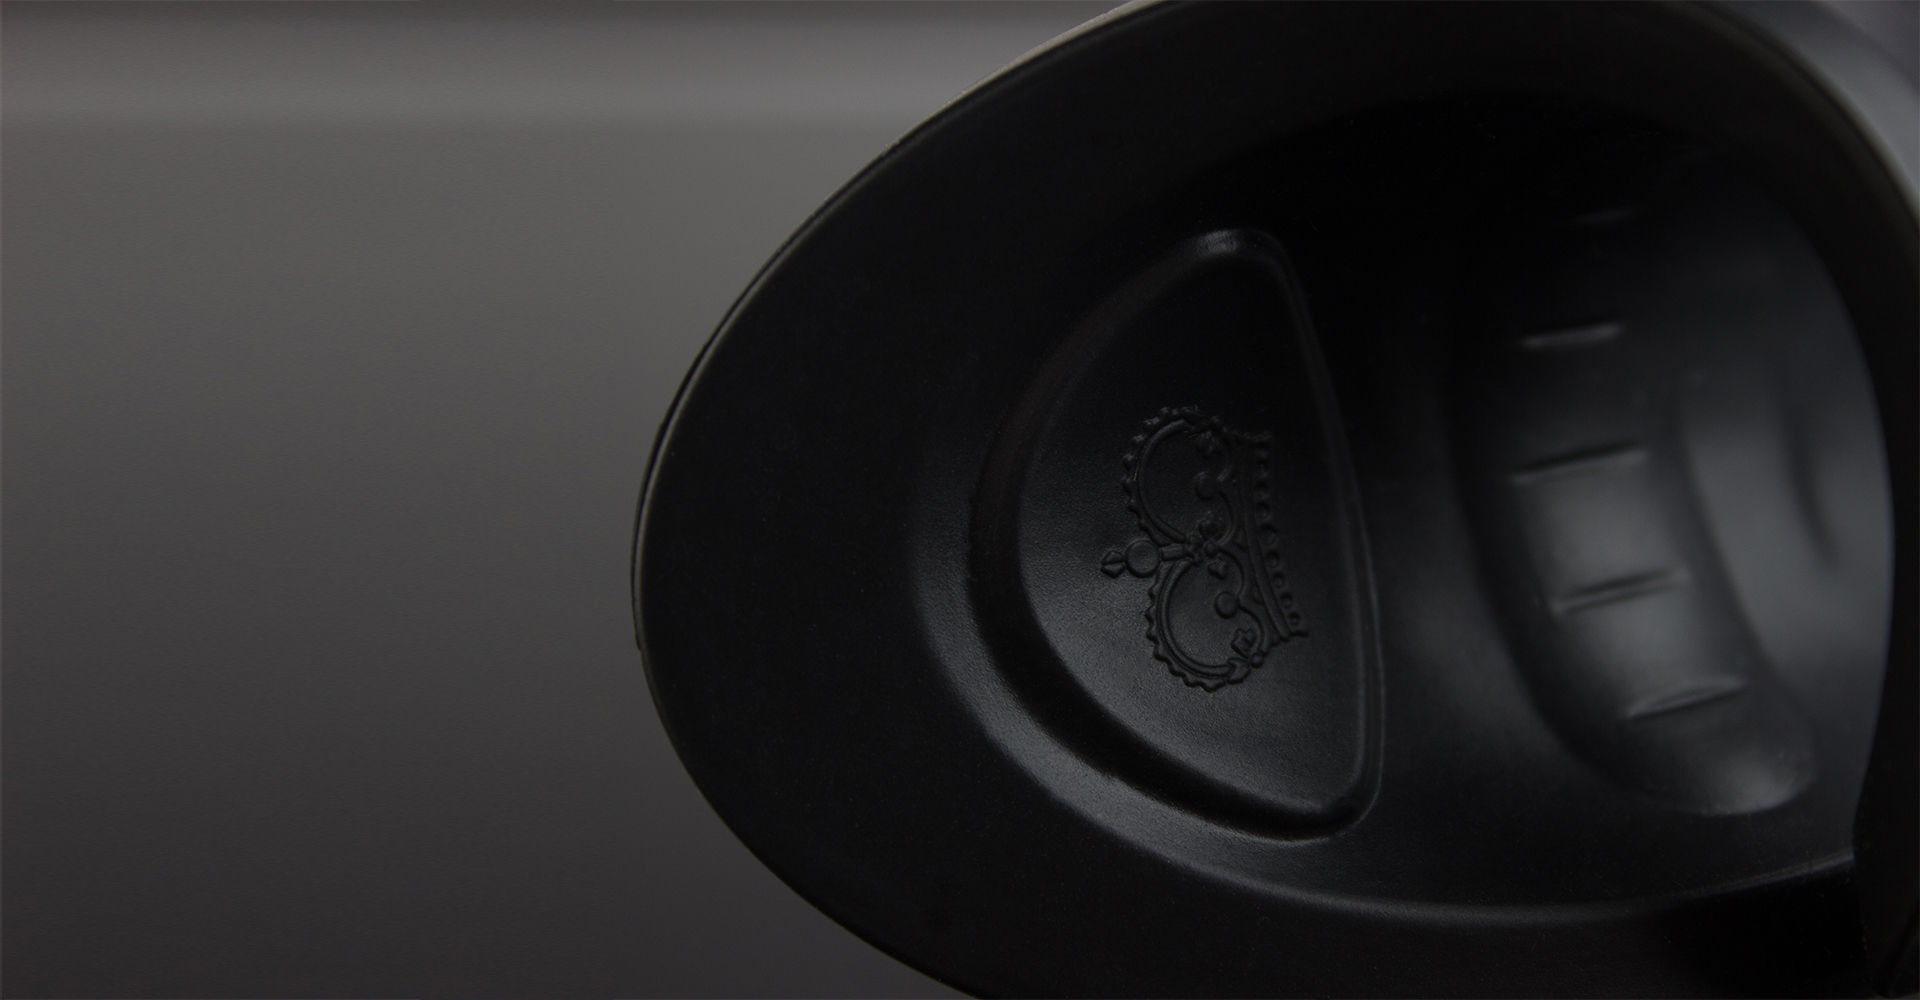 Curventa - Hot octopuss - PocketPulse - Overview - Sex toy - black - photography - close up - detail - logo